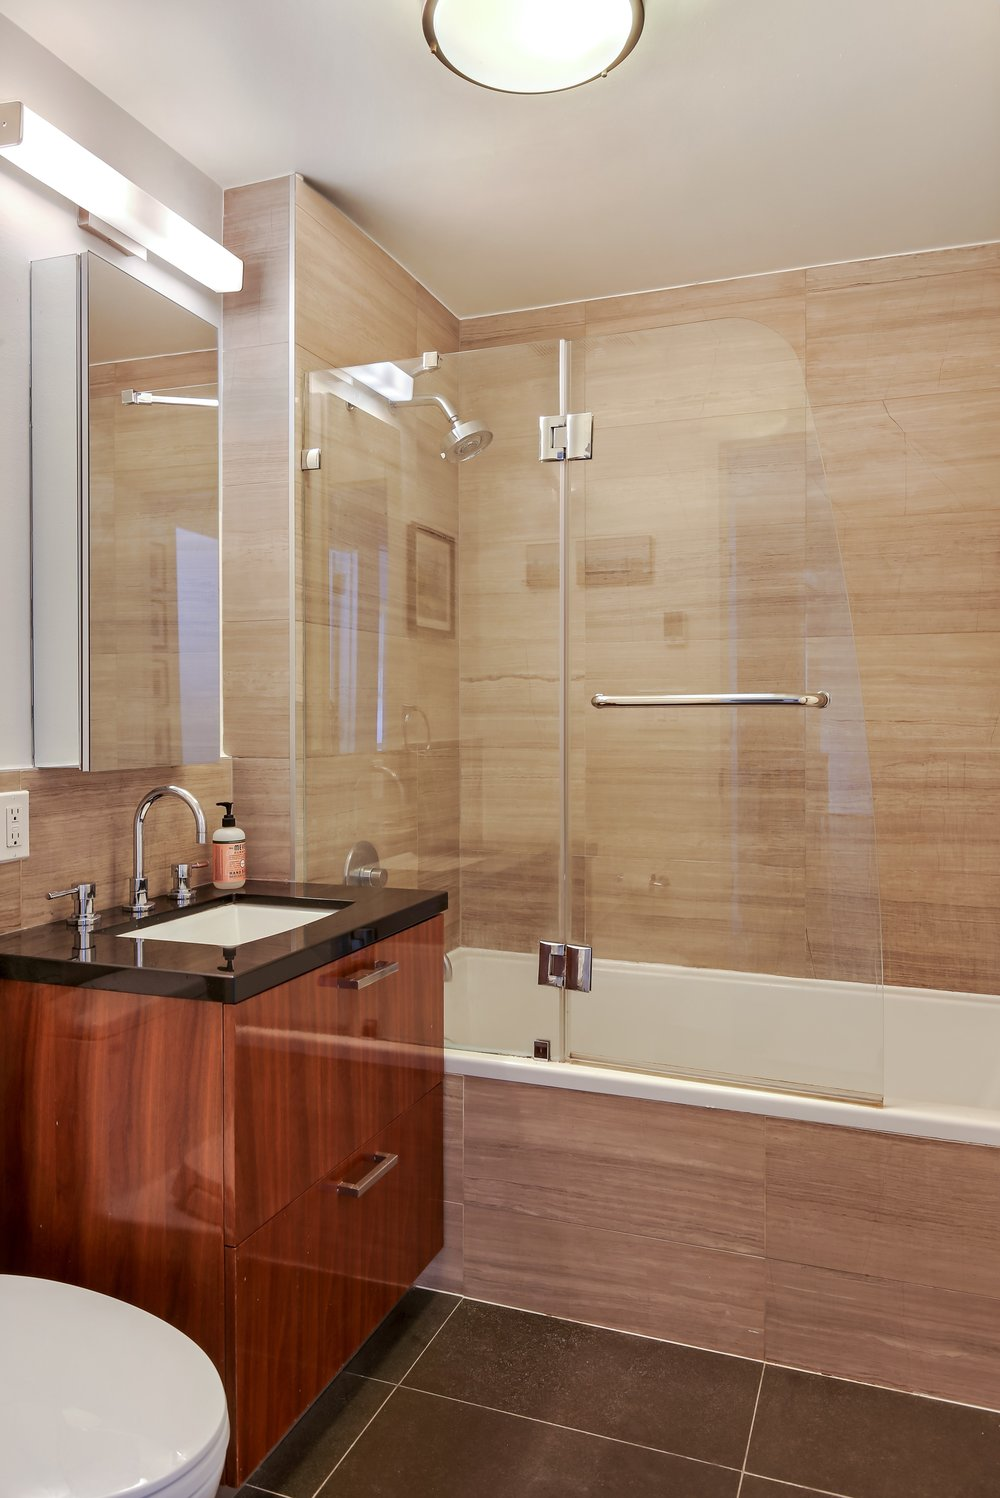 6_560CarrollStreet_2C_8_Bathroom_HiRes.jpg